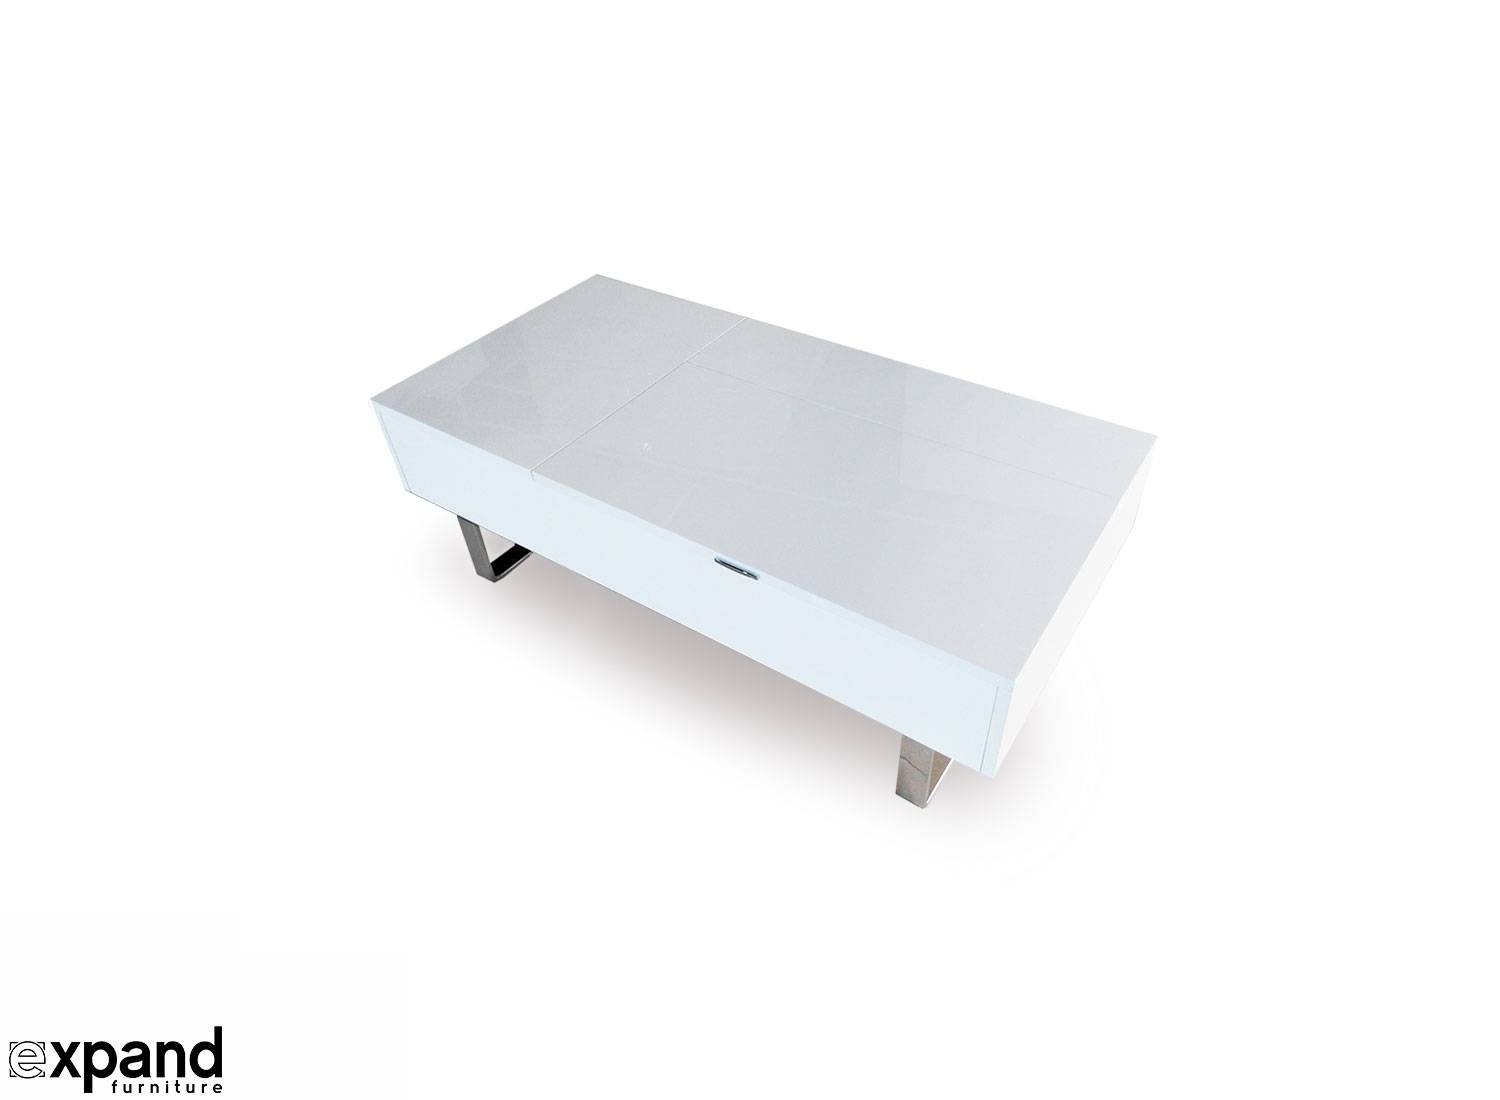 Occam Coffee Table With Lift Top | Expand Furniture for White Gloss Coffee Tables (Image 19 of 30)